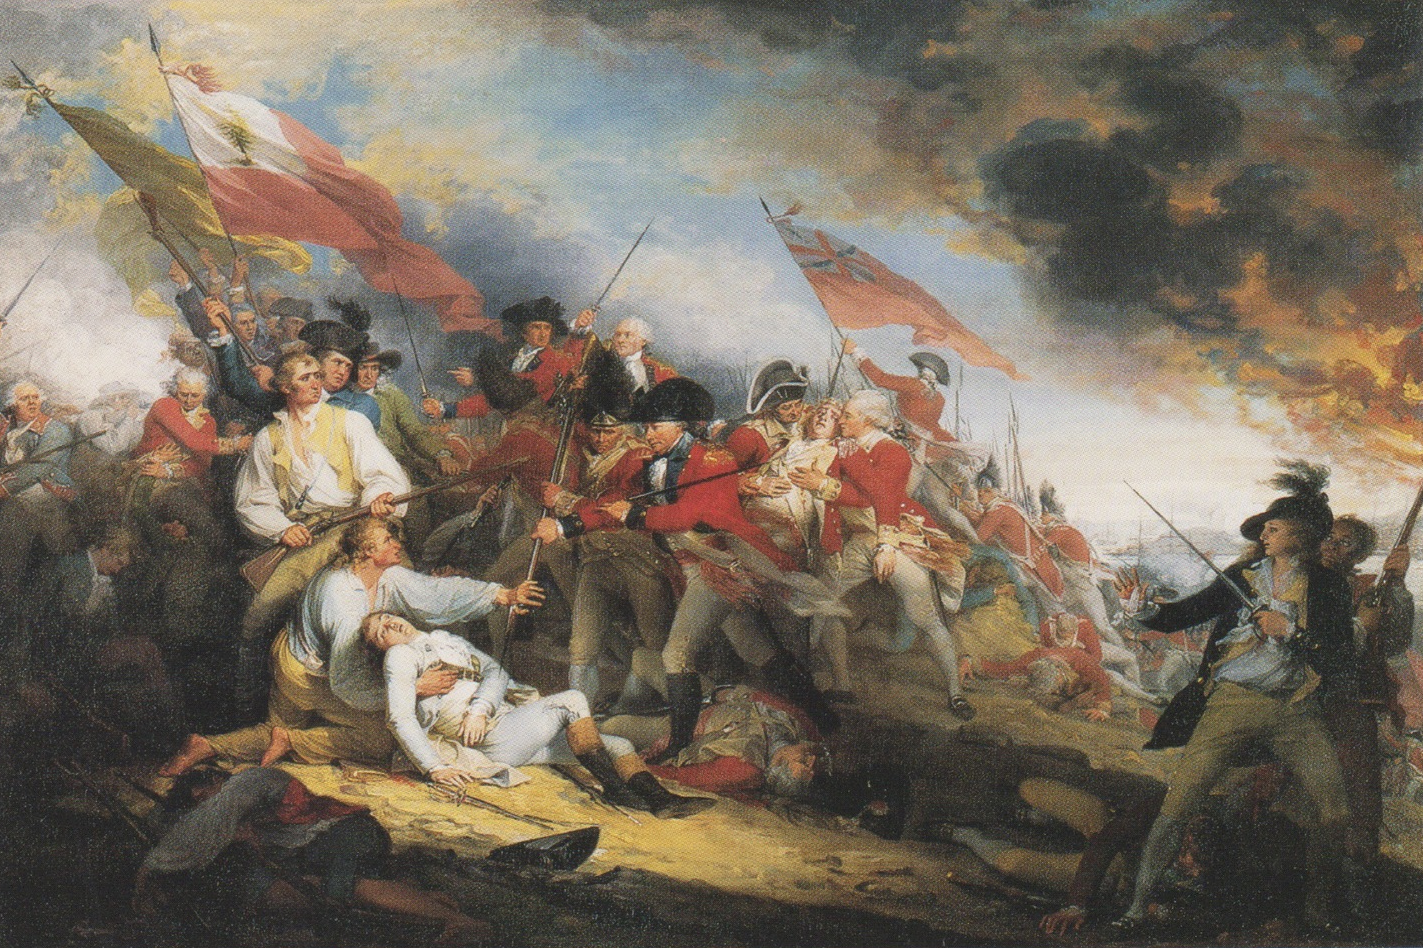 The Death of General Warren at the Battle of Bunker's Hill ,  17 June 1775 , by John Trumbull, 1786. The figure at the right is an injured Col. Thos. Grosvenor, builder of the house, and friend of the painter. .  Image: Yale University Art Gallery.